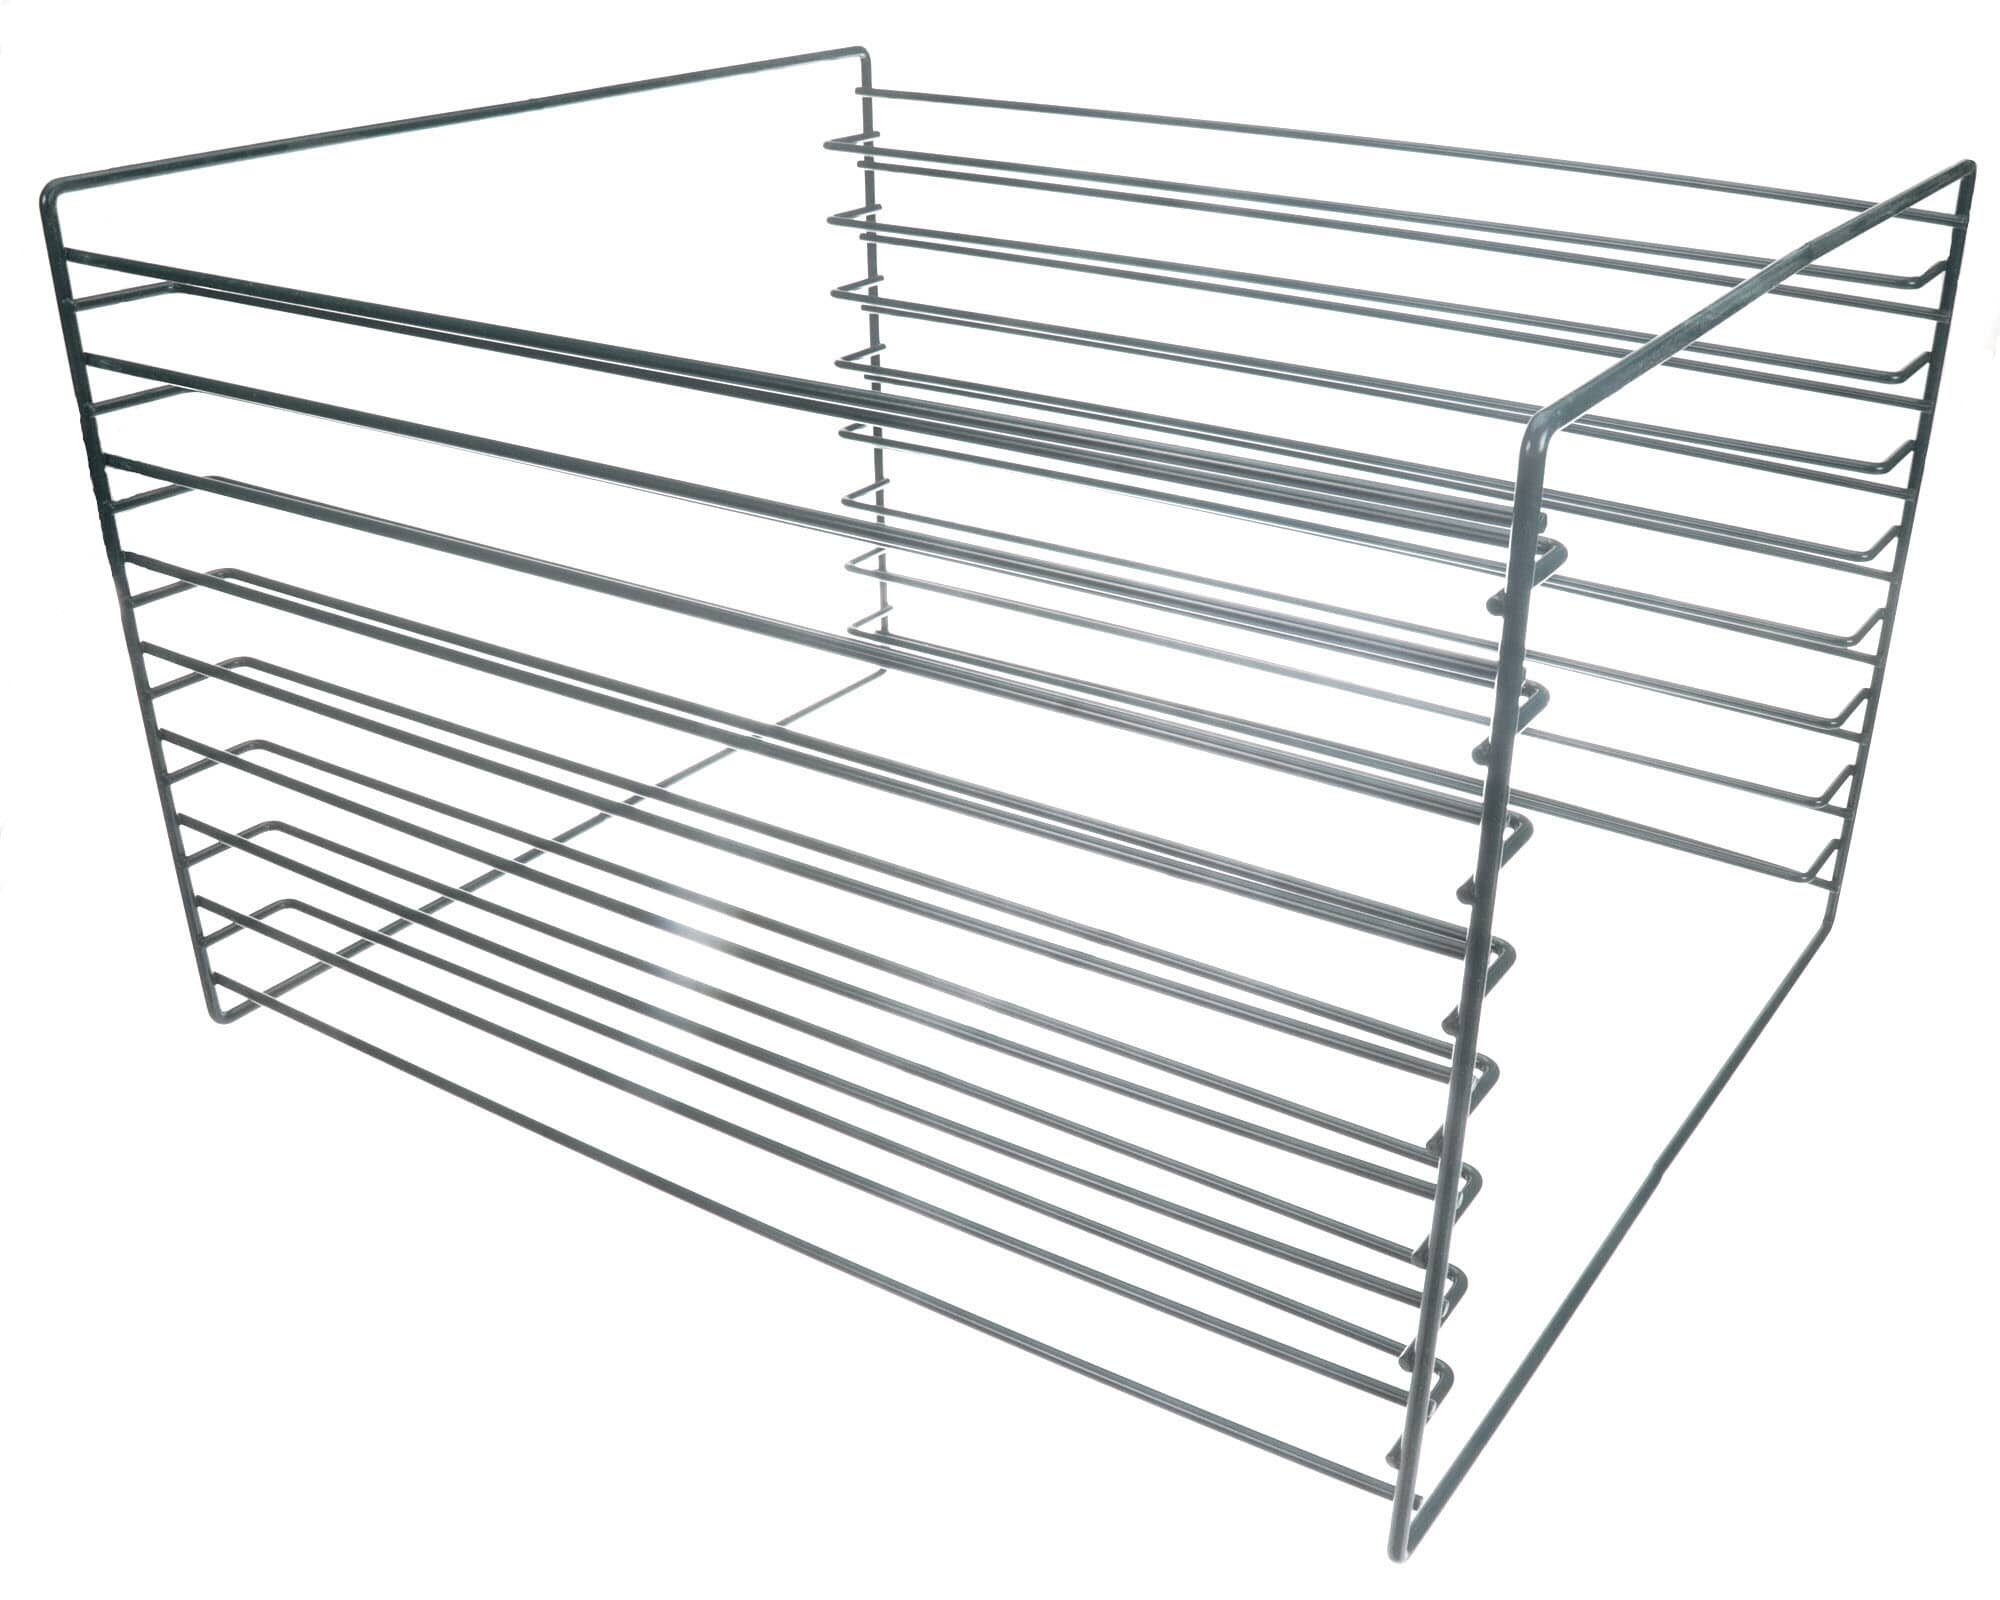 Master-Bilt 02-146515 TRAY SLIDE RACK KIT (FUSION) R